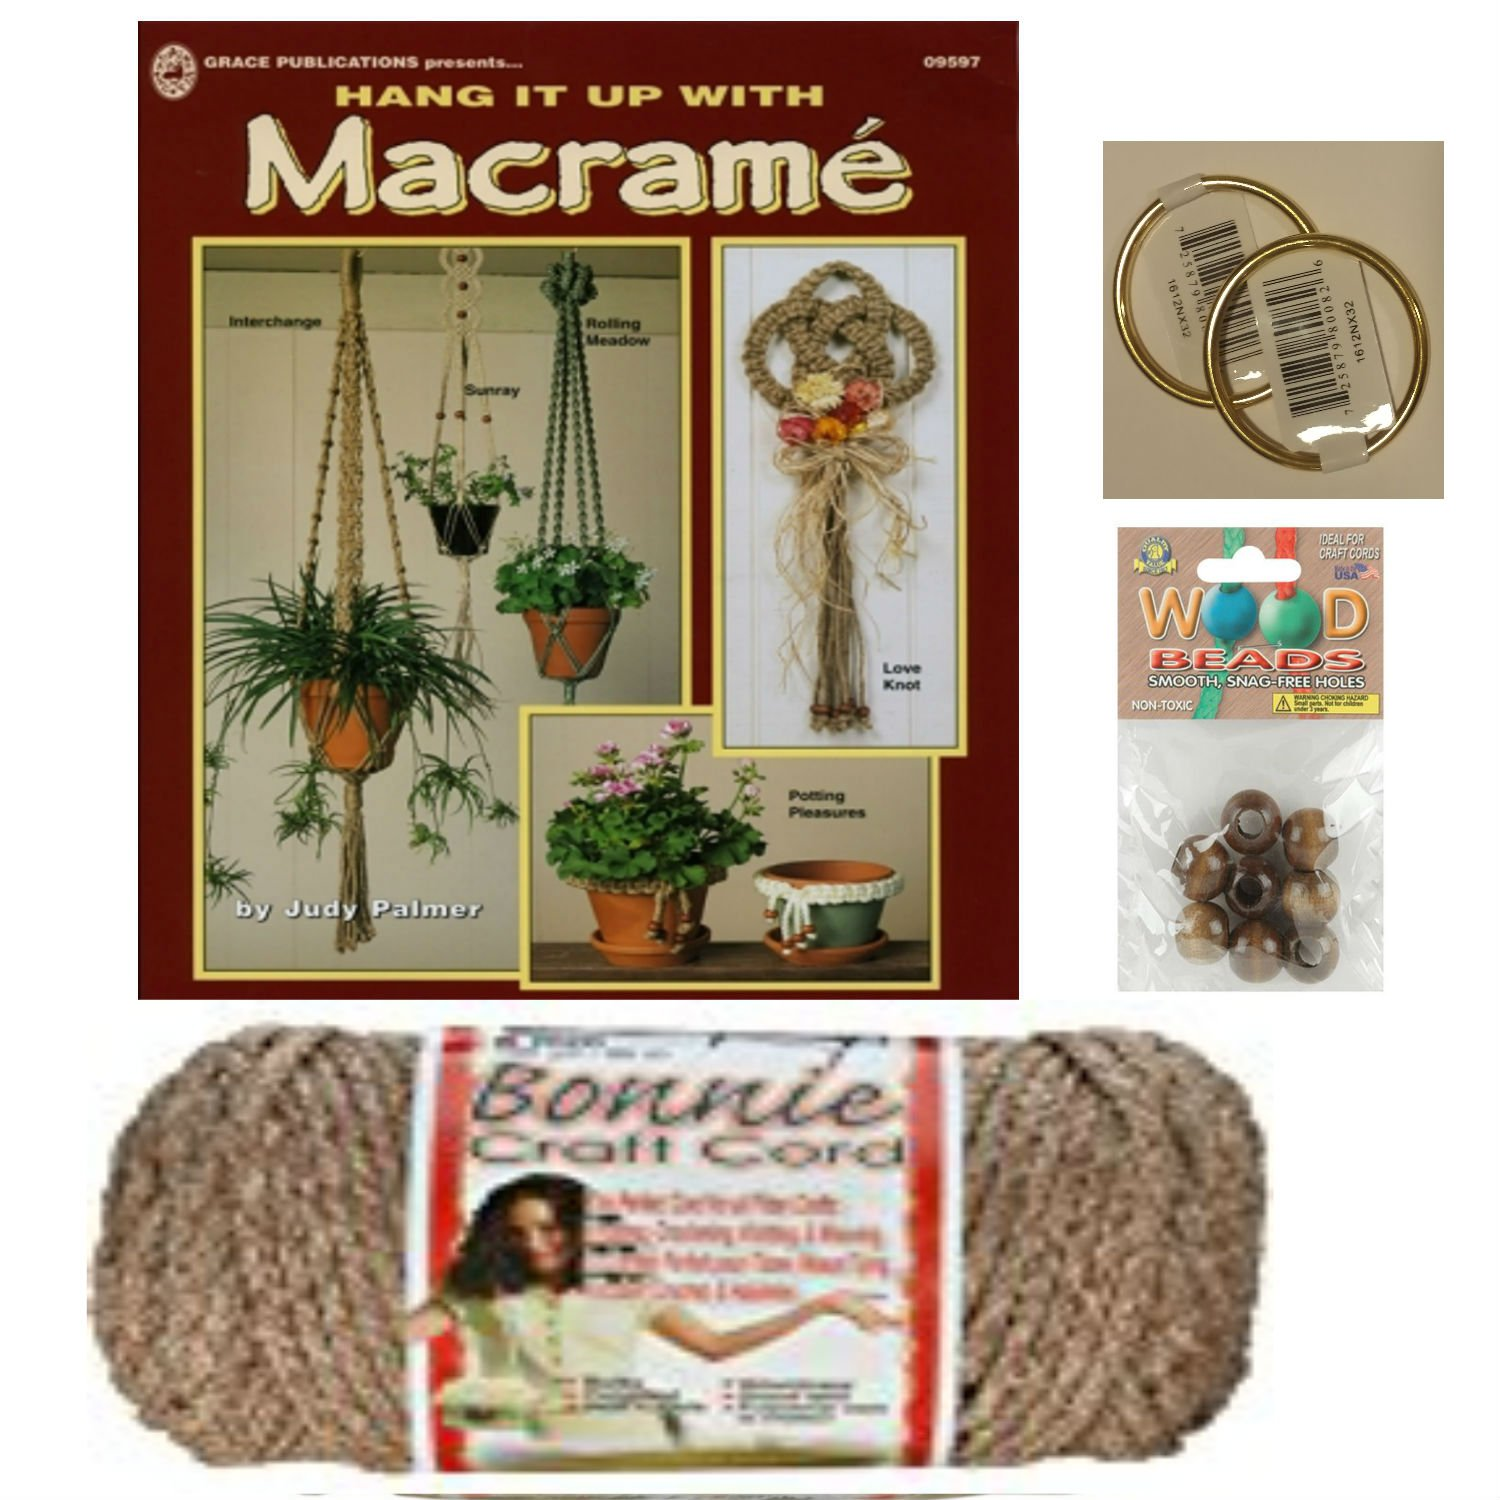 Macrame kit Bundle with Craft Cord, Wooden Beads, Rings, and Project Book for Plant Hangers and Wall hangings (Pearl) Gideons Goods